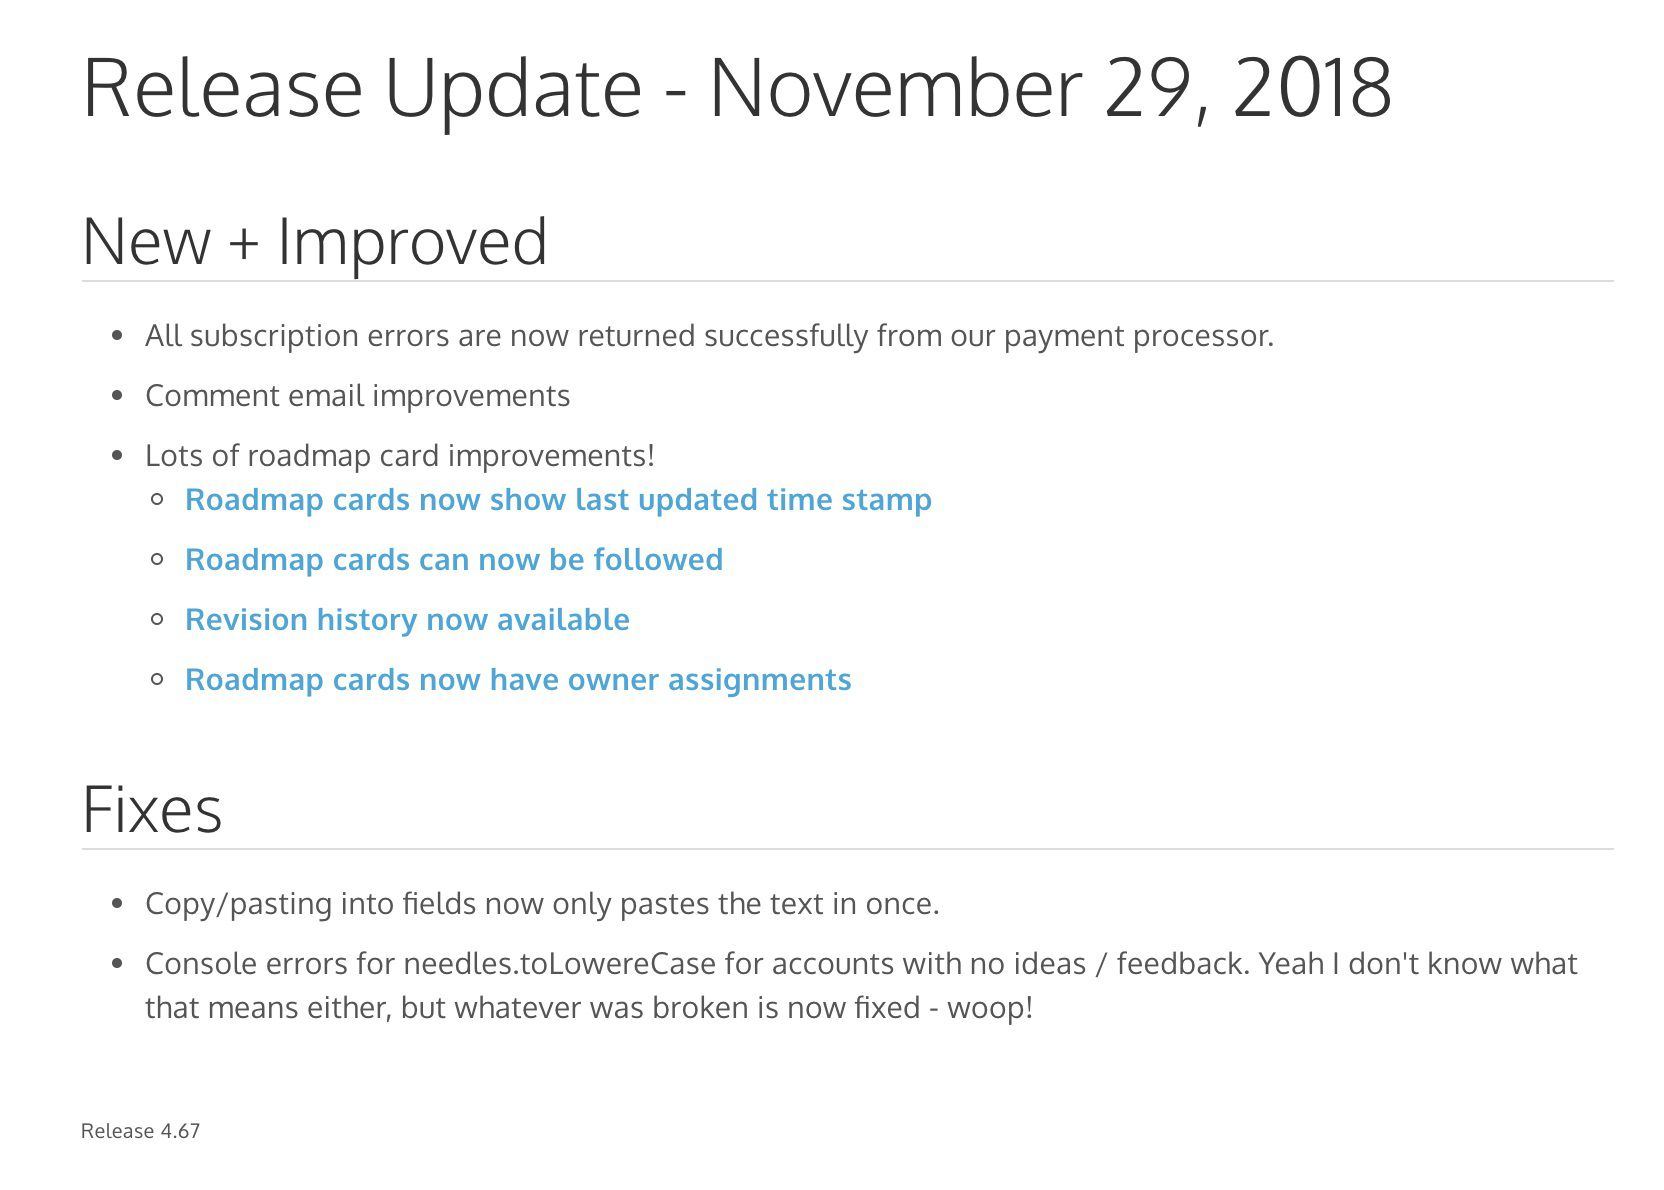 008 Excellent Software Release Note Template Concept  Free Download Sample Microsoft WordFull